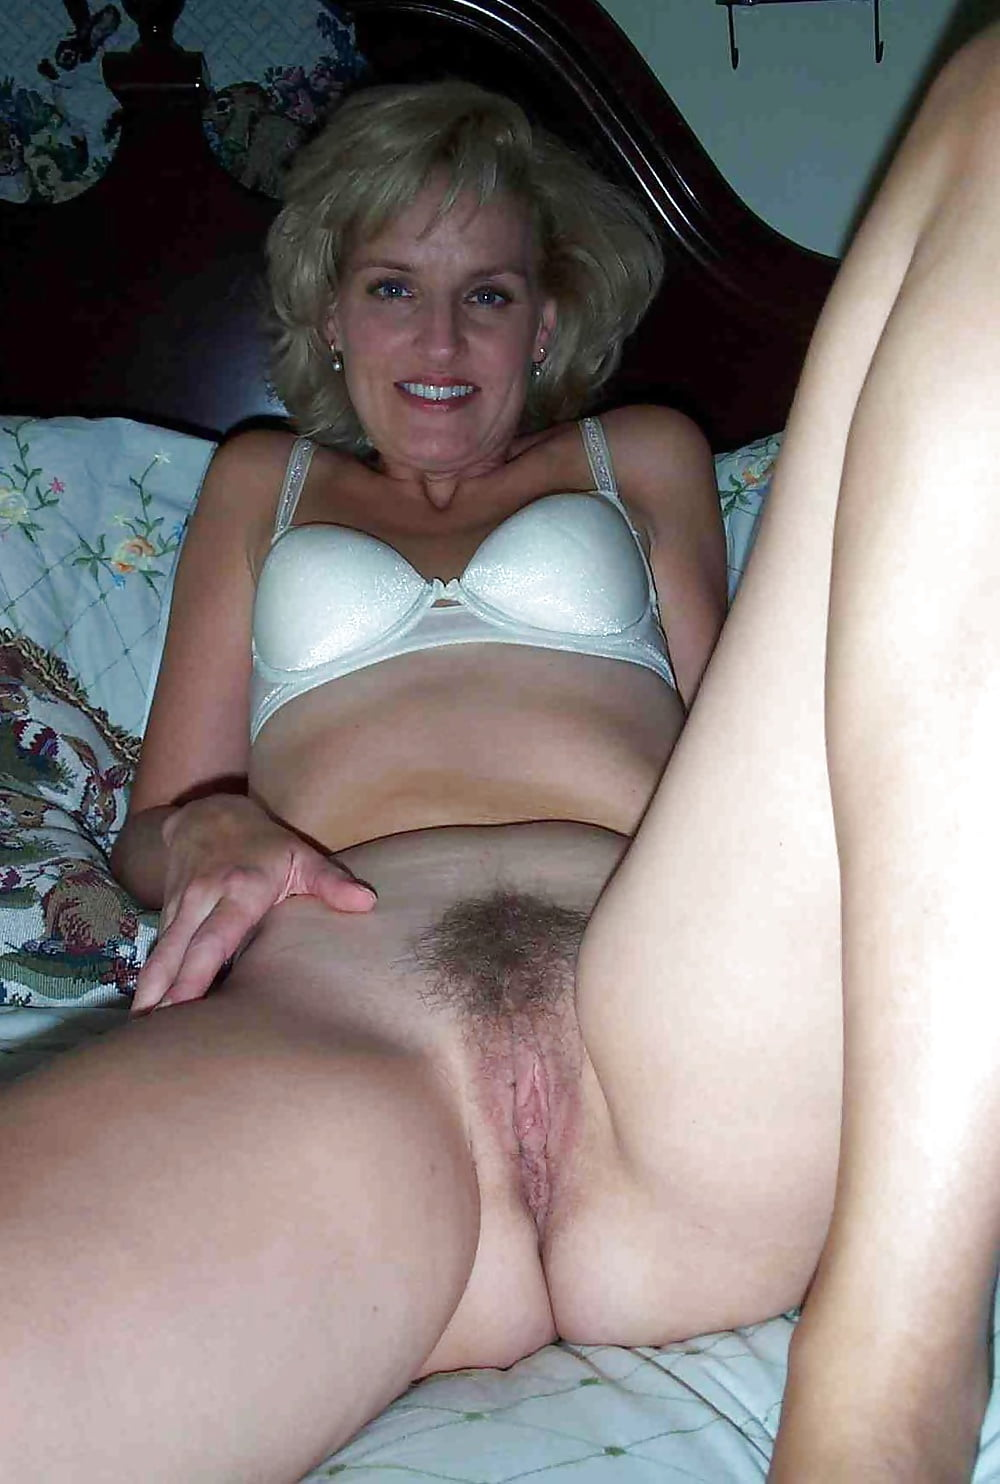 Real Amateur Naked Women